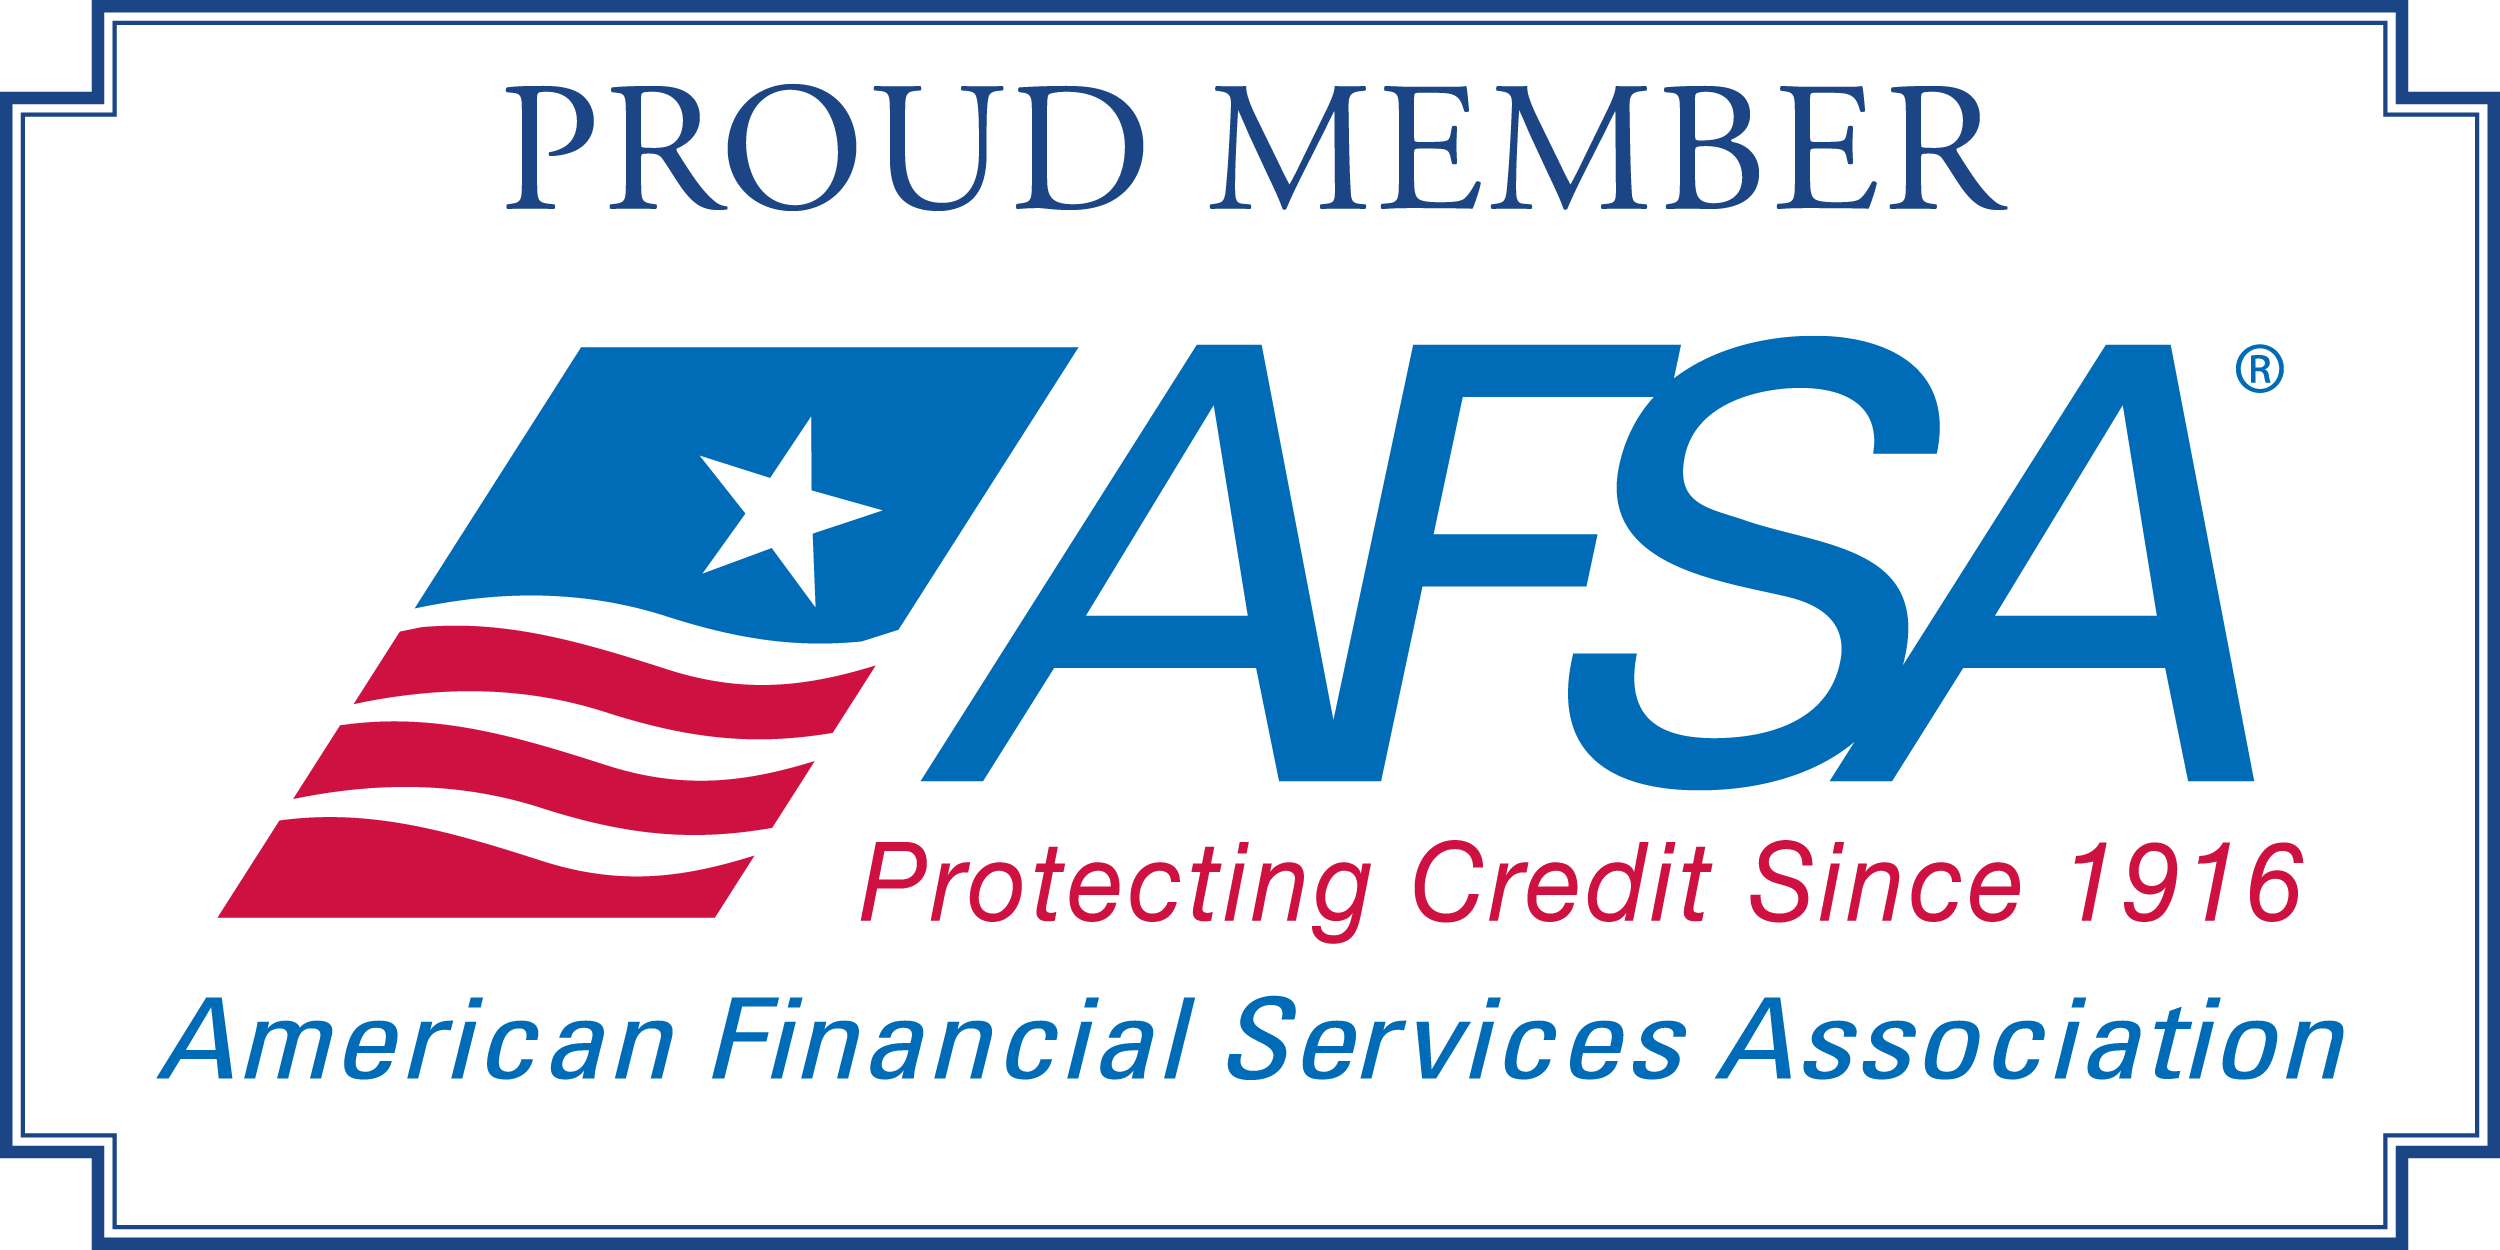 AFSA-ProudMember_whitebackground.png